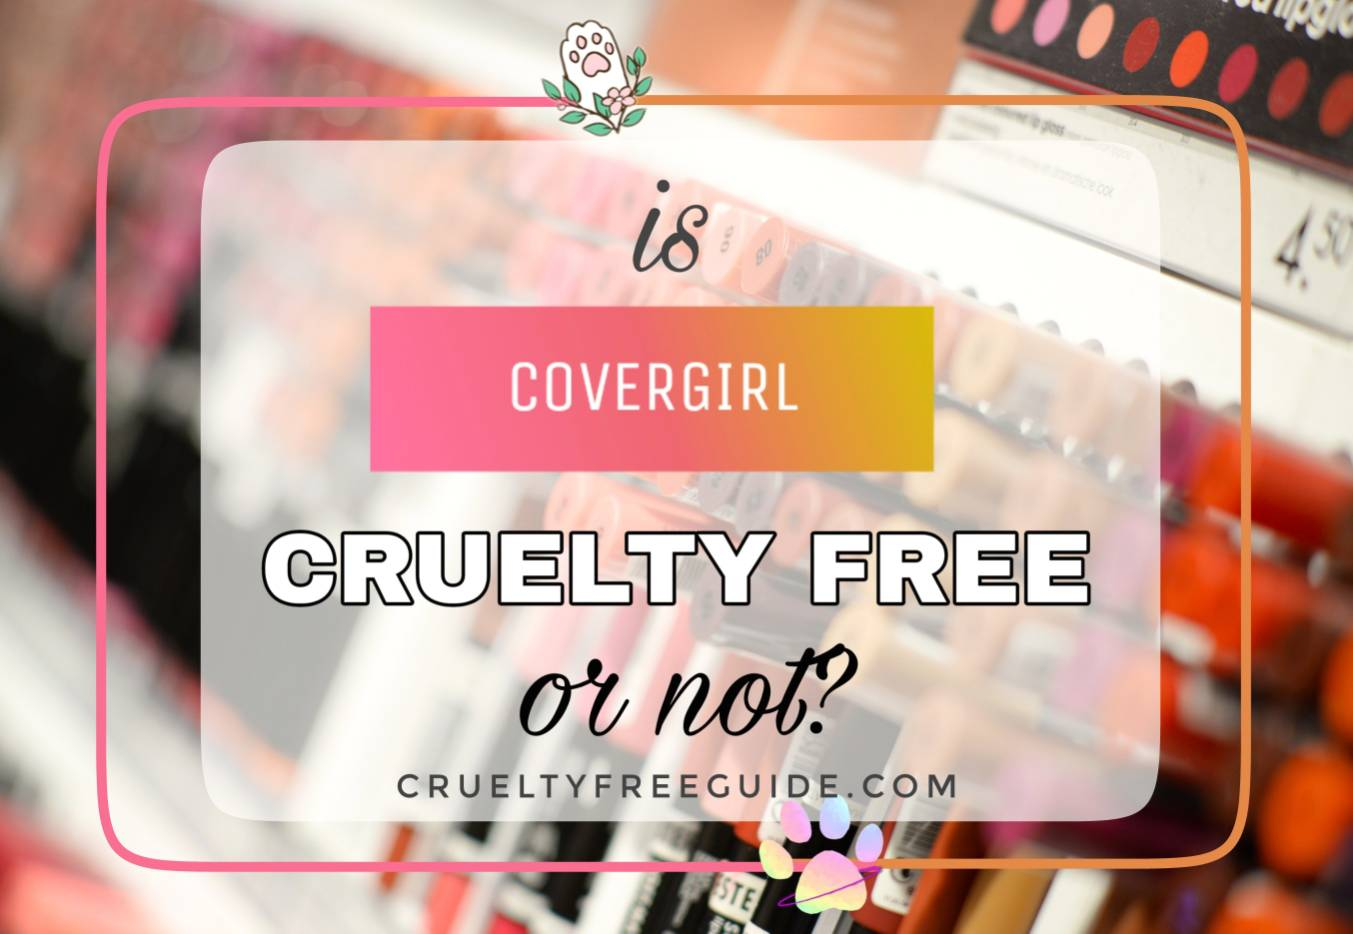 Covergirl Cruelty free or not